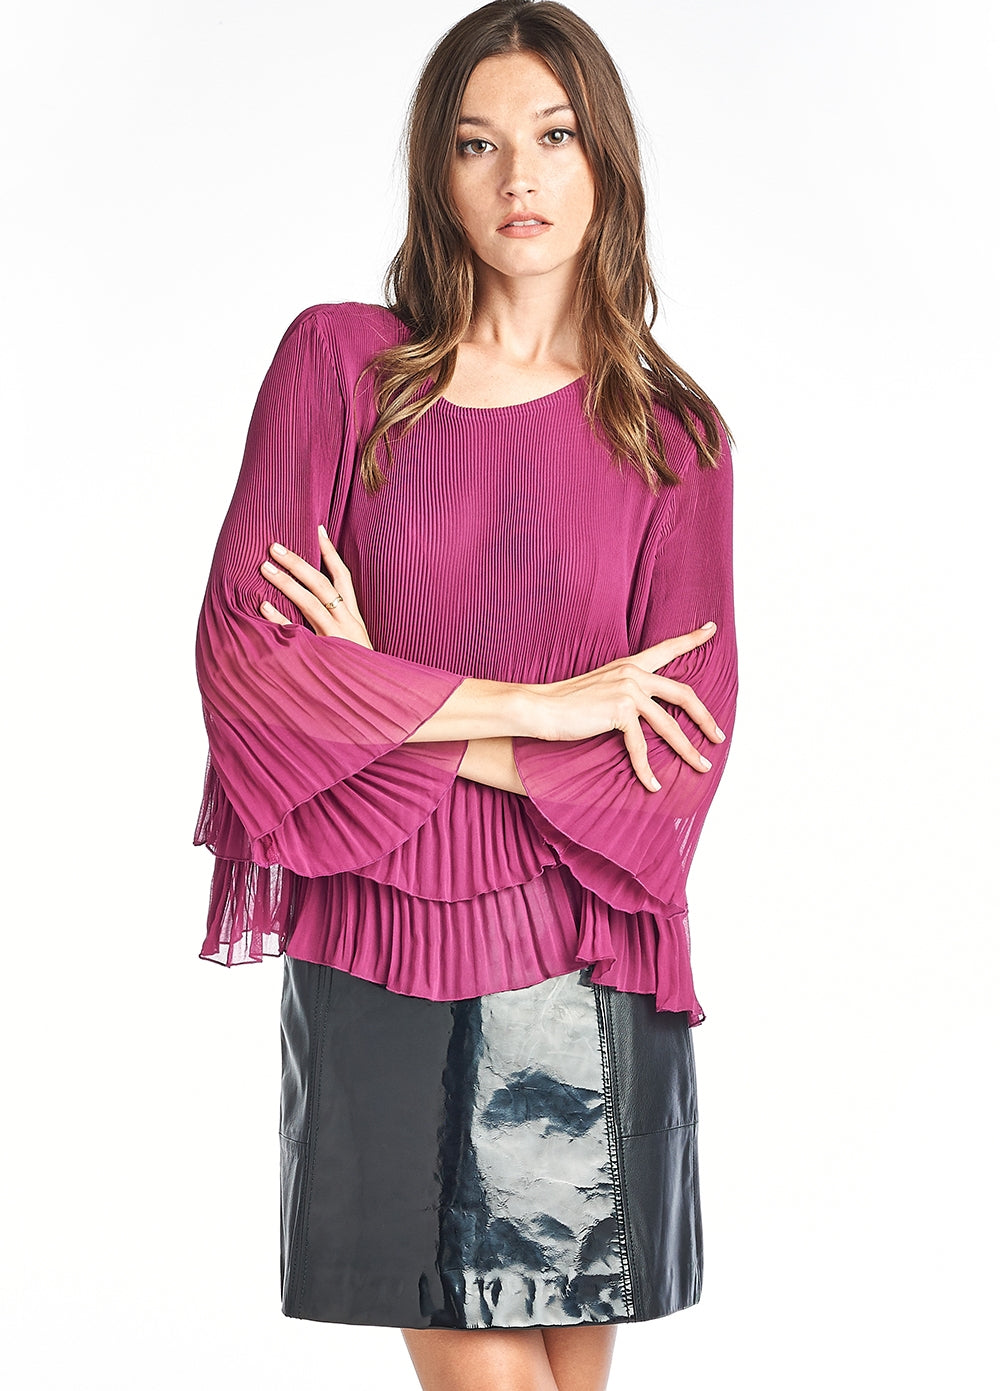 IRIS pleated Ruffle Blouse Pink 3/4 sleeve